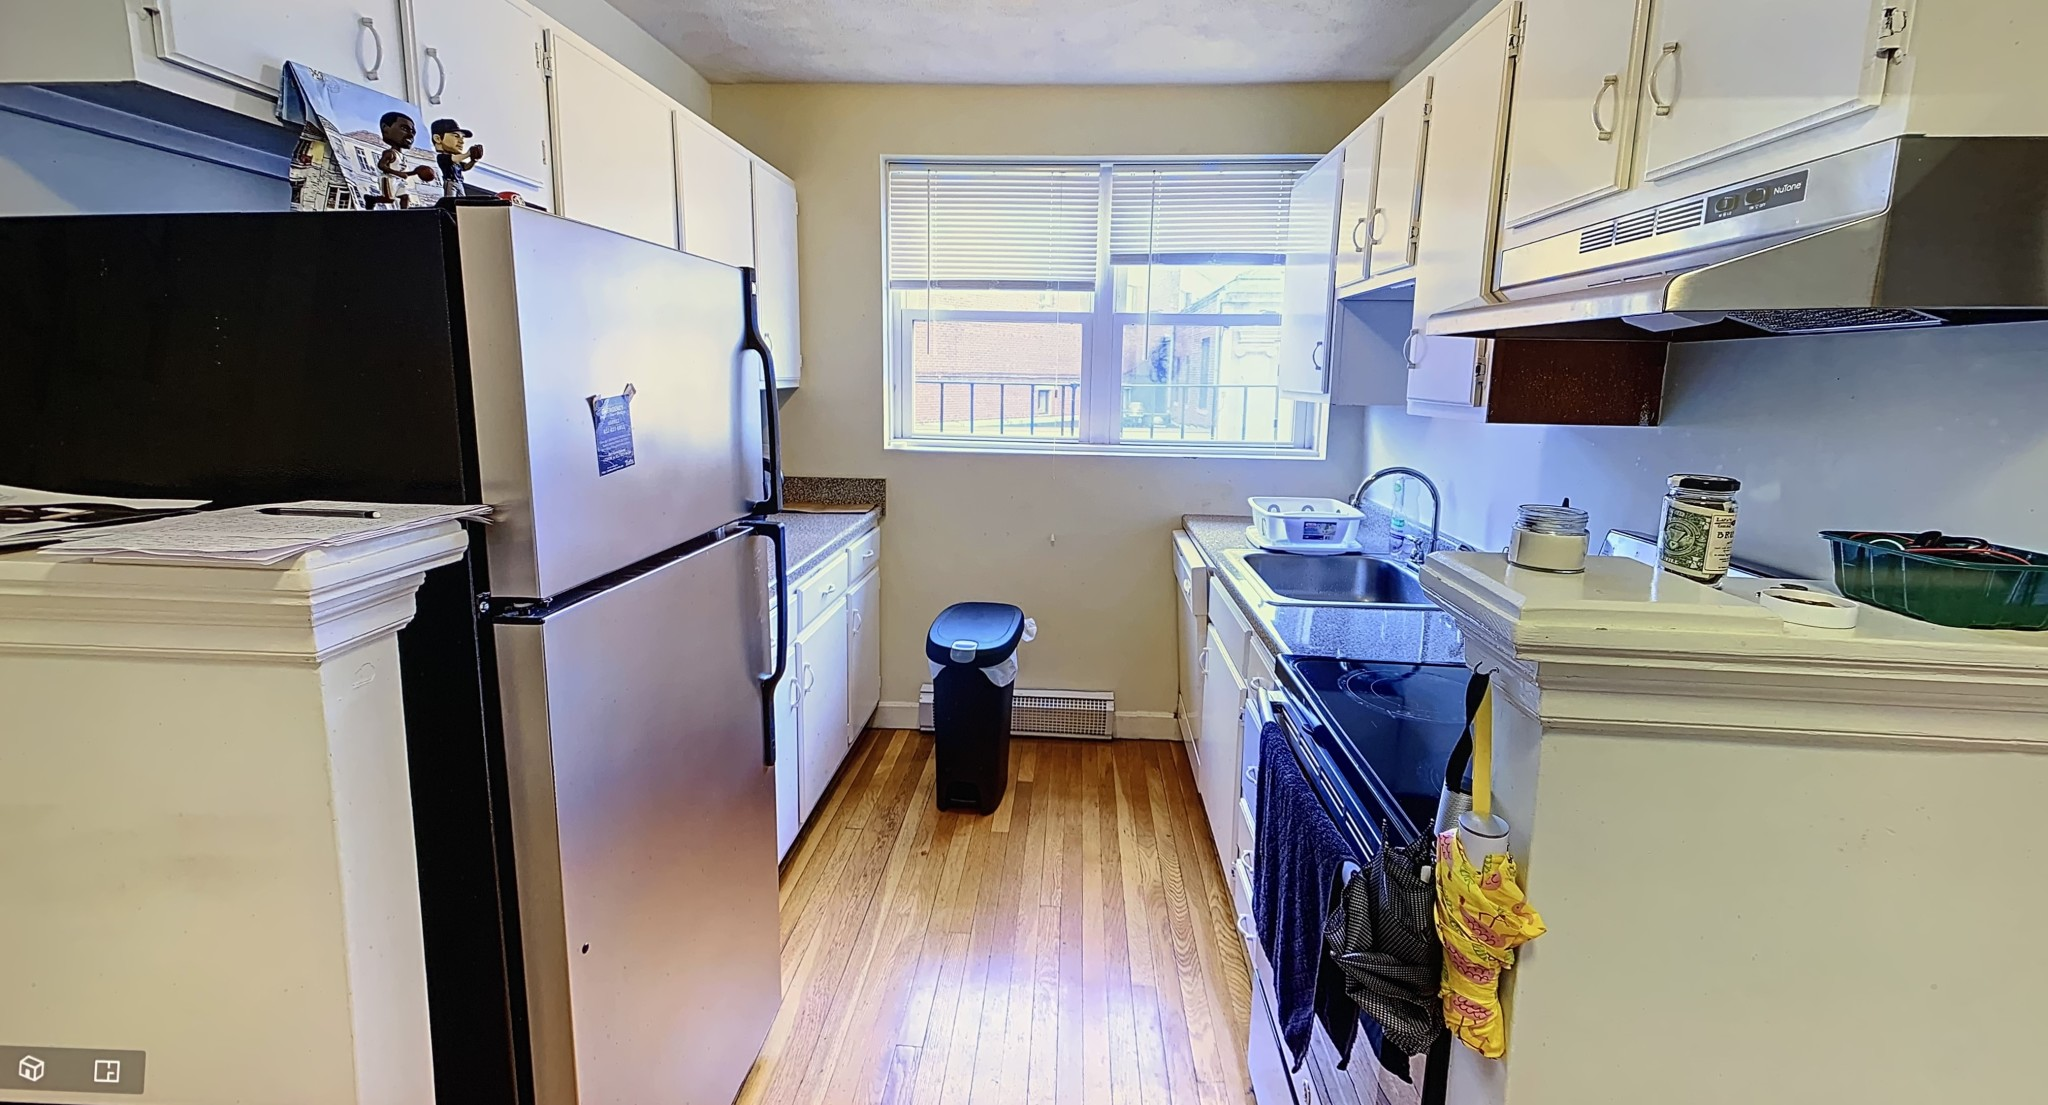 Studio, 1 Bath apartment in Somerville, Davis Square for $1,735